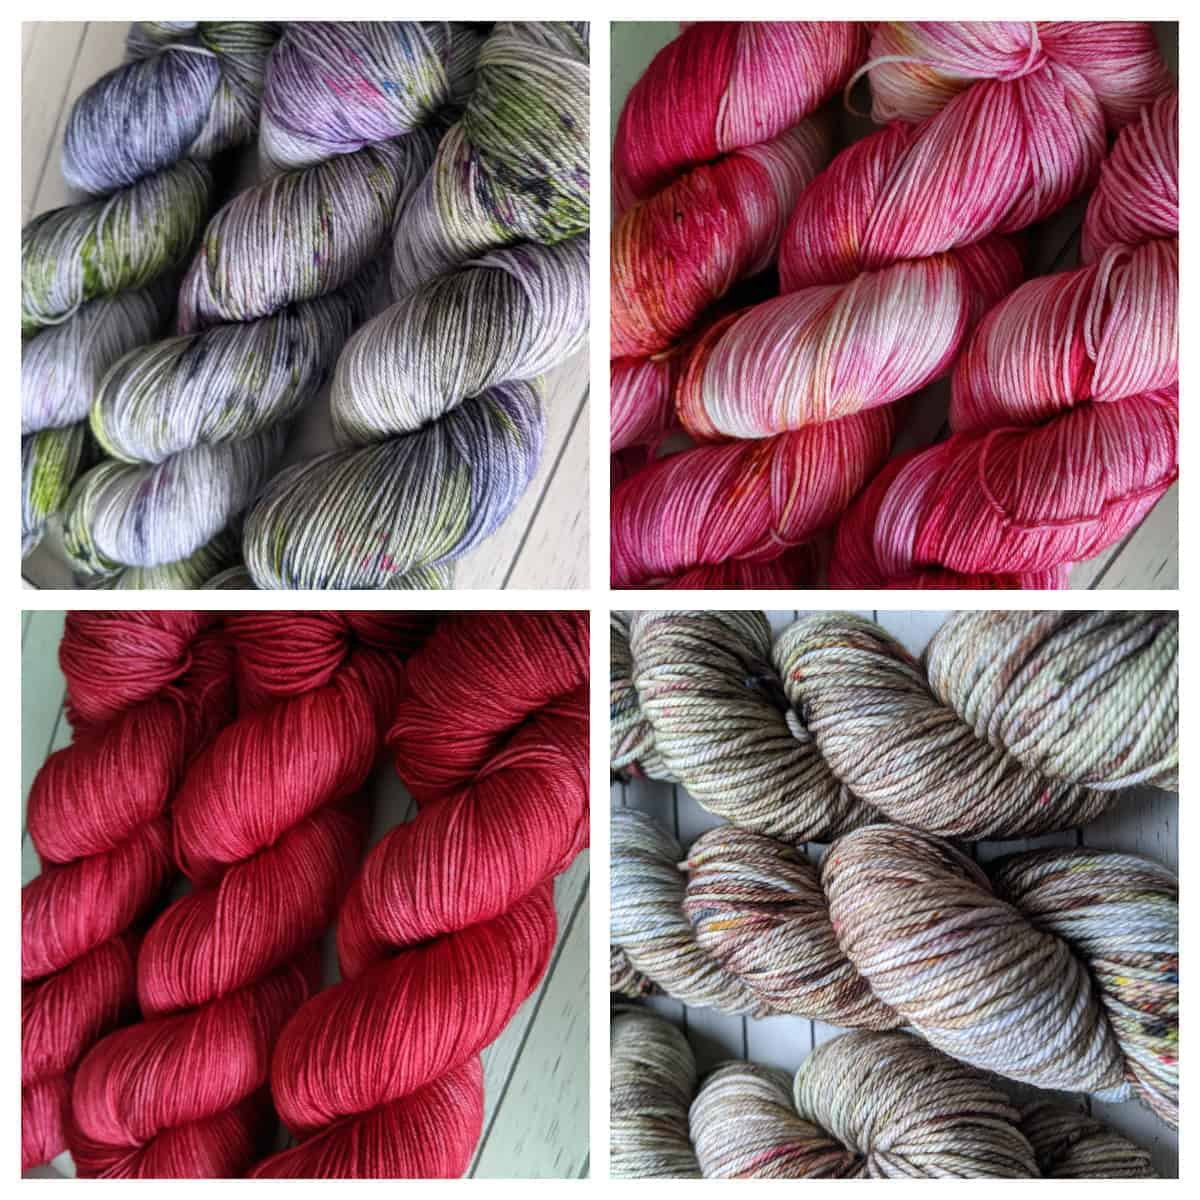 A collage of yarn.